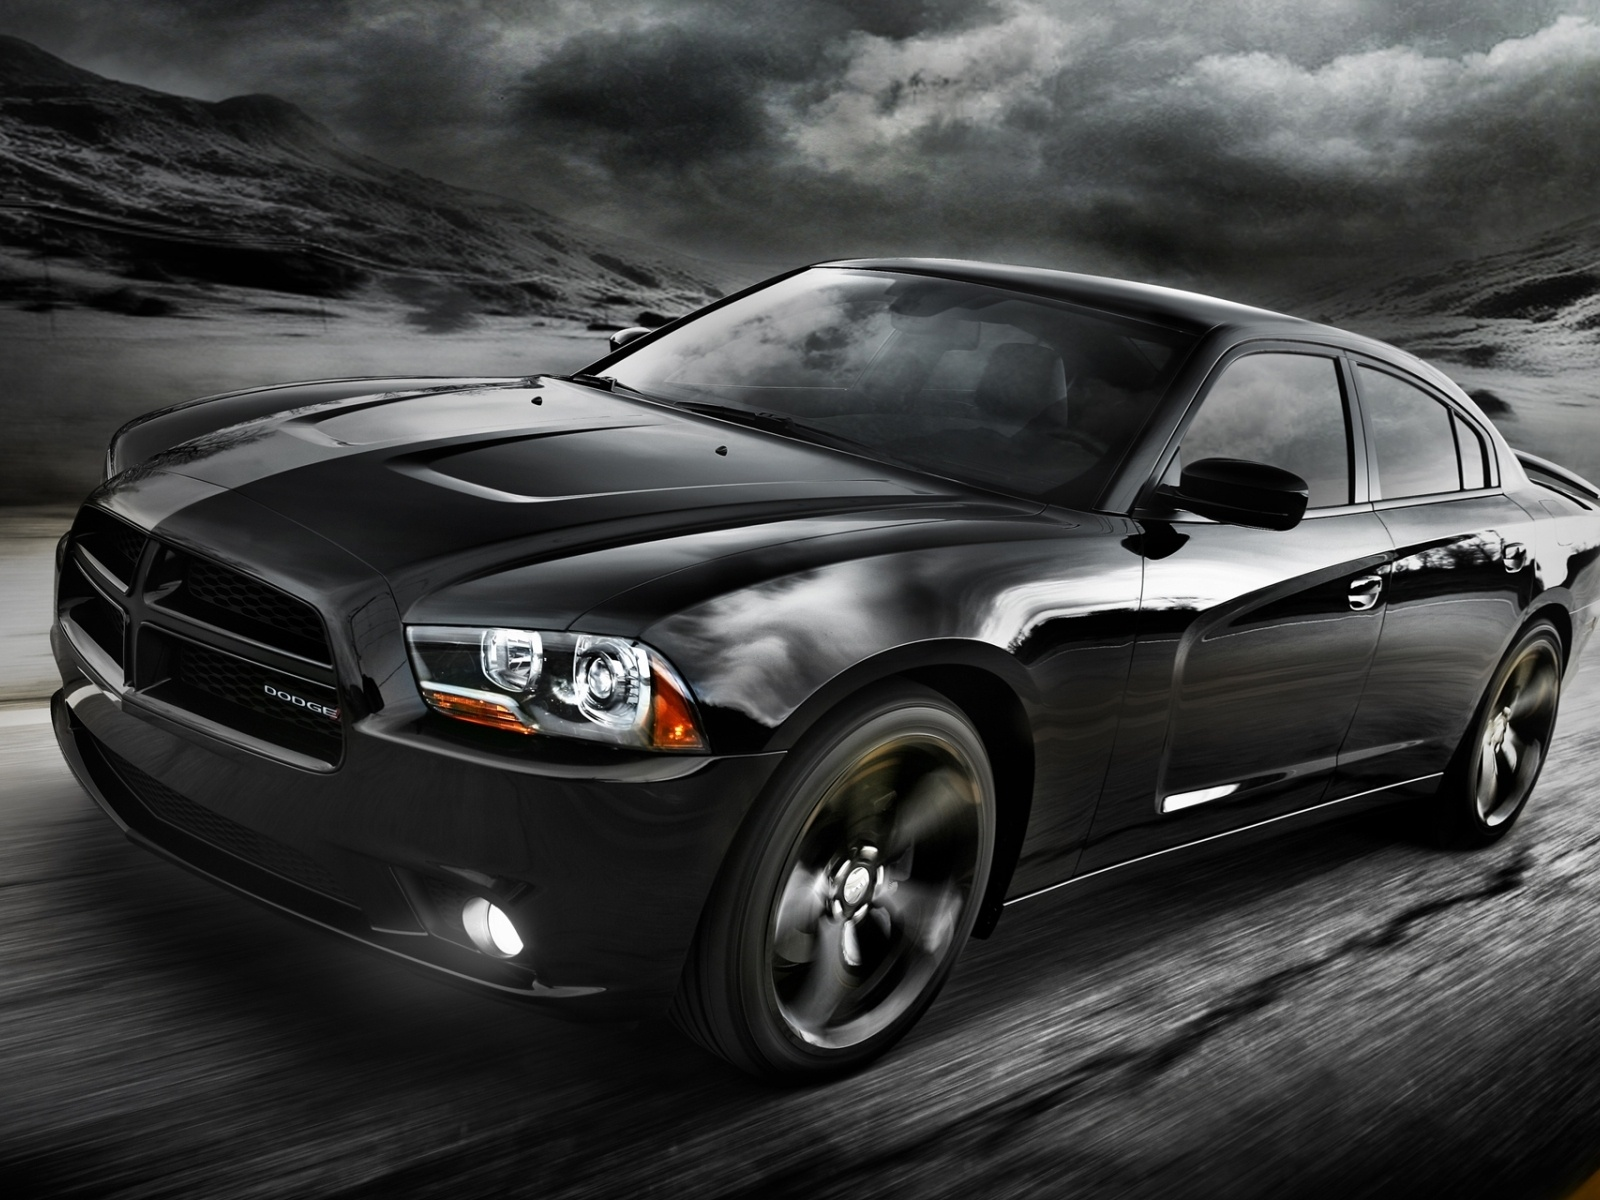 Quotes Fun And Pictures Black Car Wallpapers